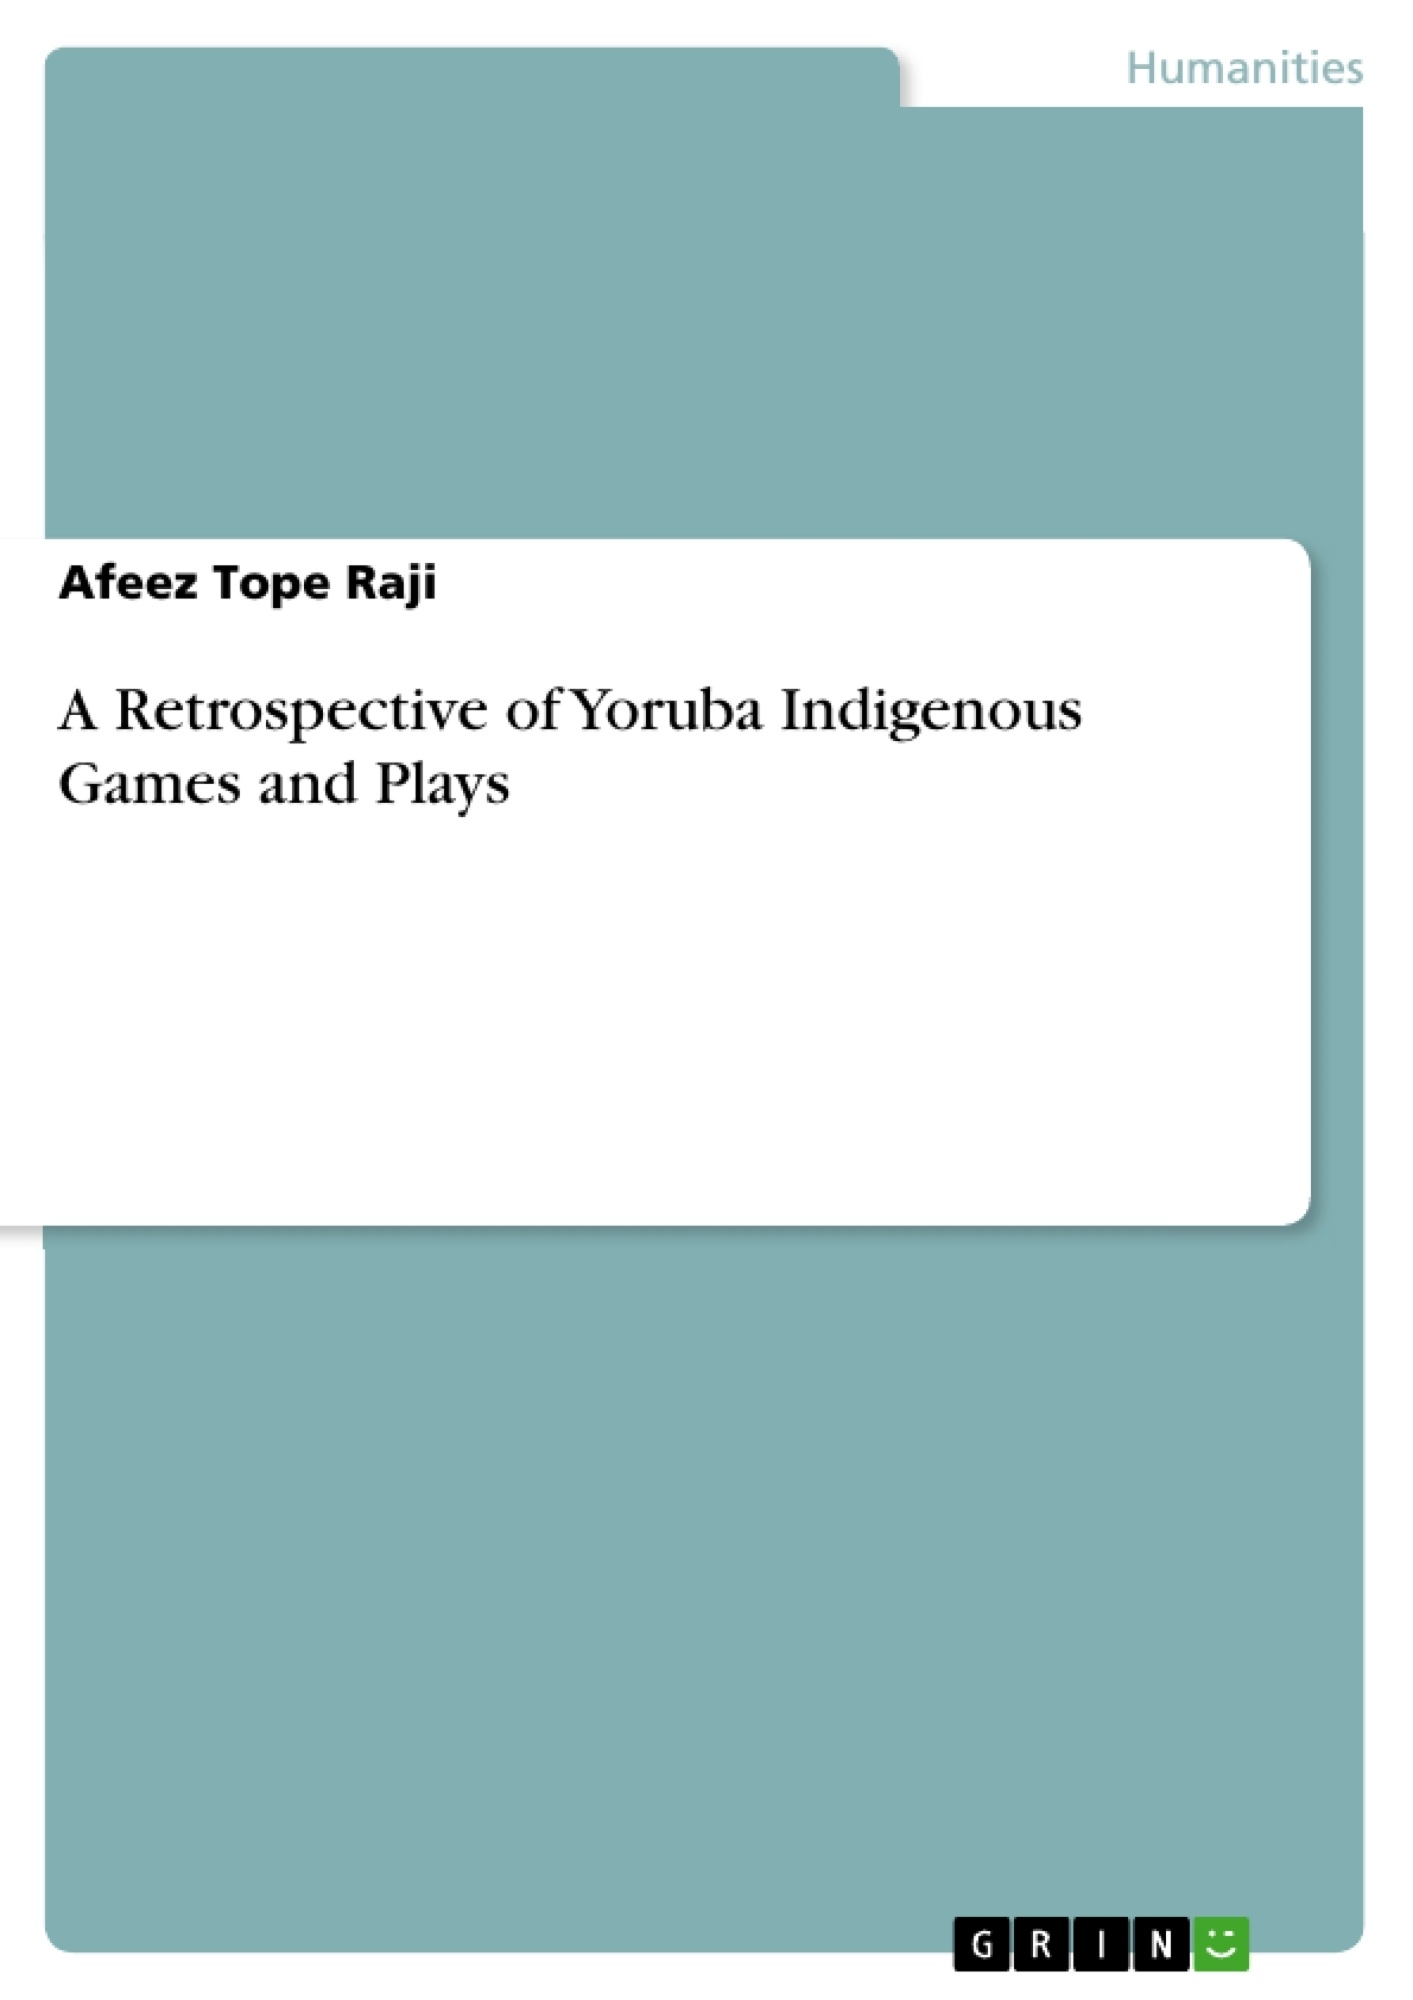 Title: A Retrospective of Yoruba Indigenous Games and Plays